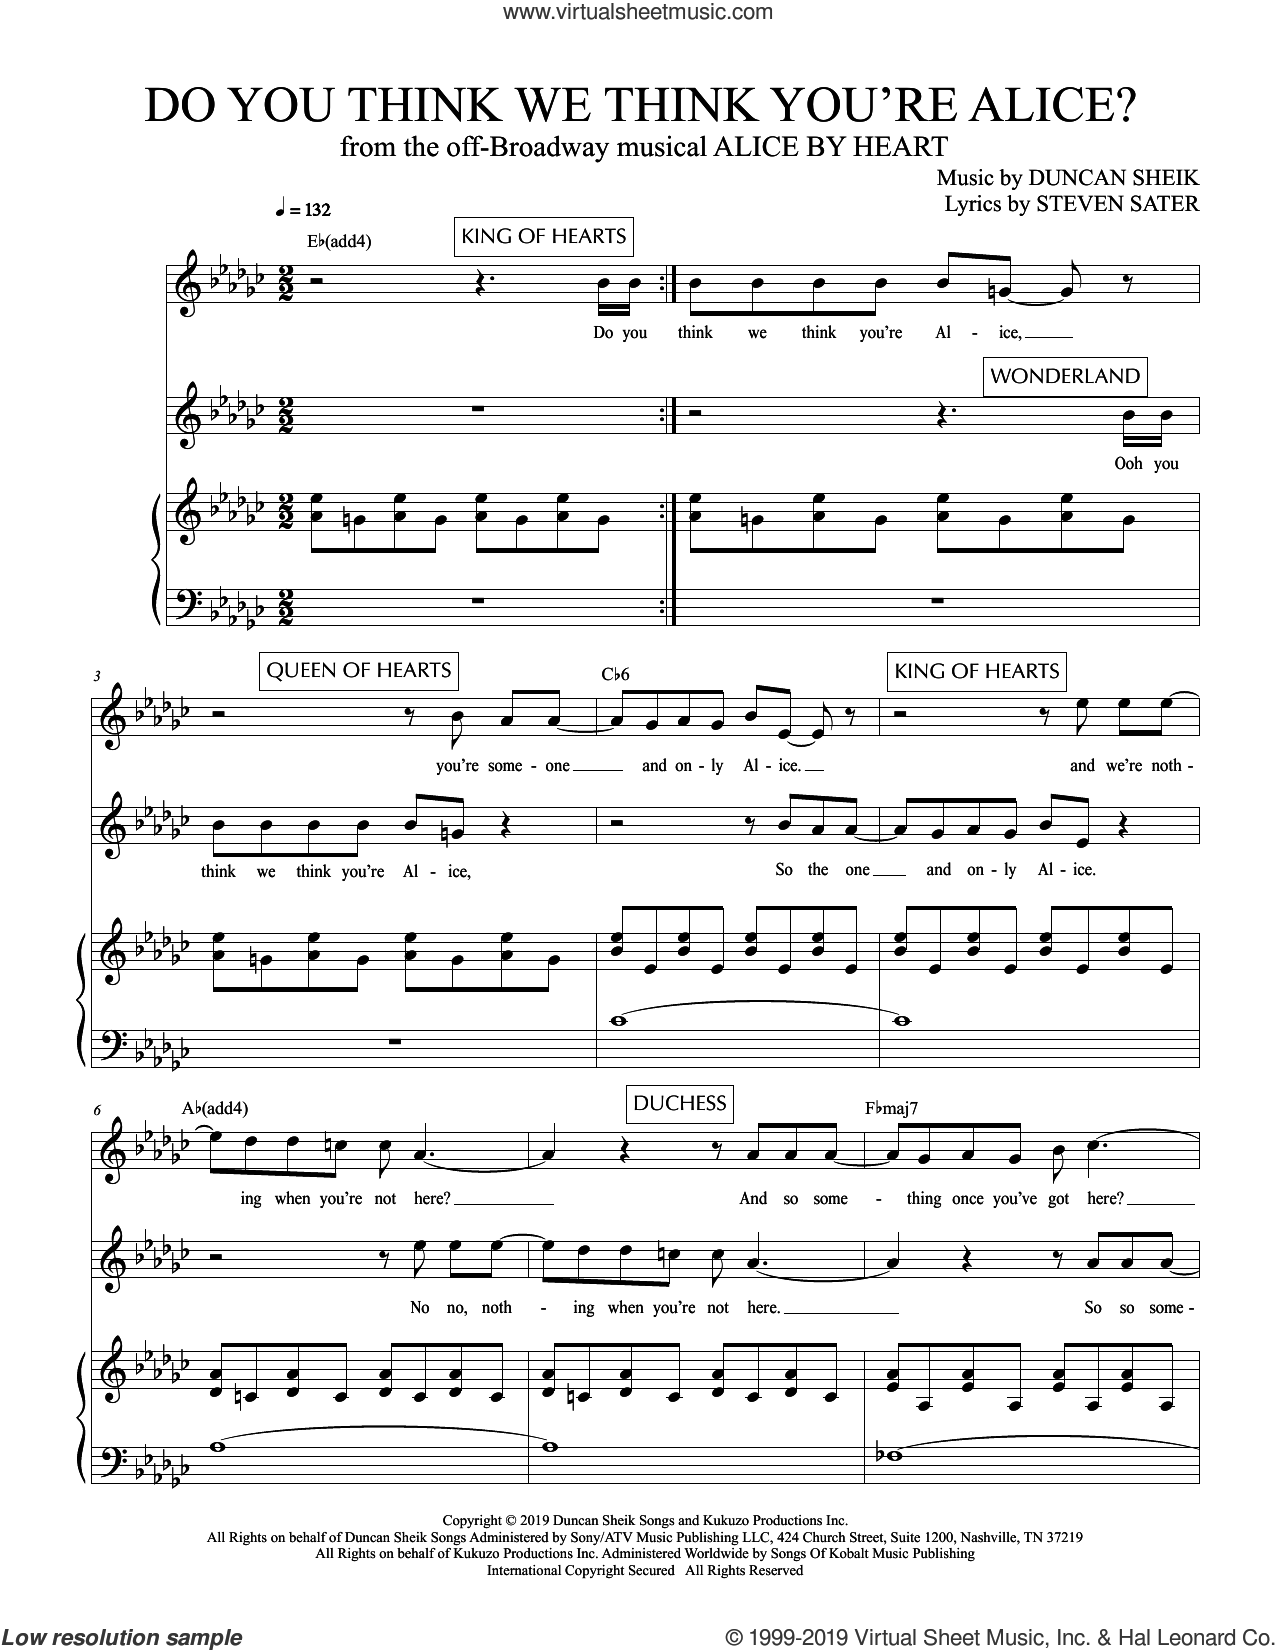 Do You Think We Think You're Alice? (from Alice By Heart) sheet music for voice and piano by Duncan Sheik, Duncan Sheik and Steven Sater and Steven Sater, intermediate skill level